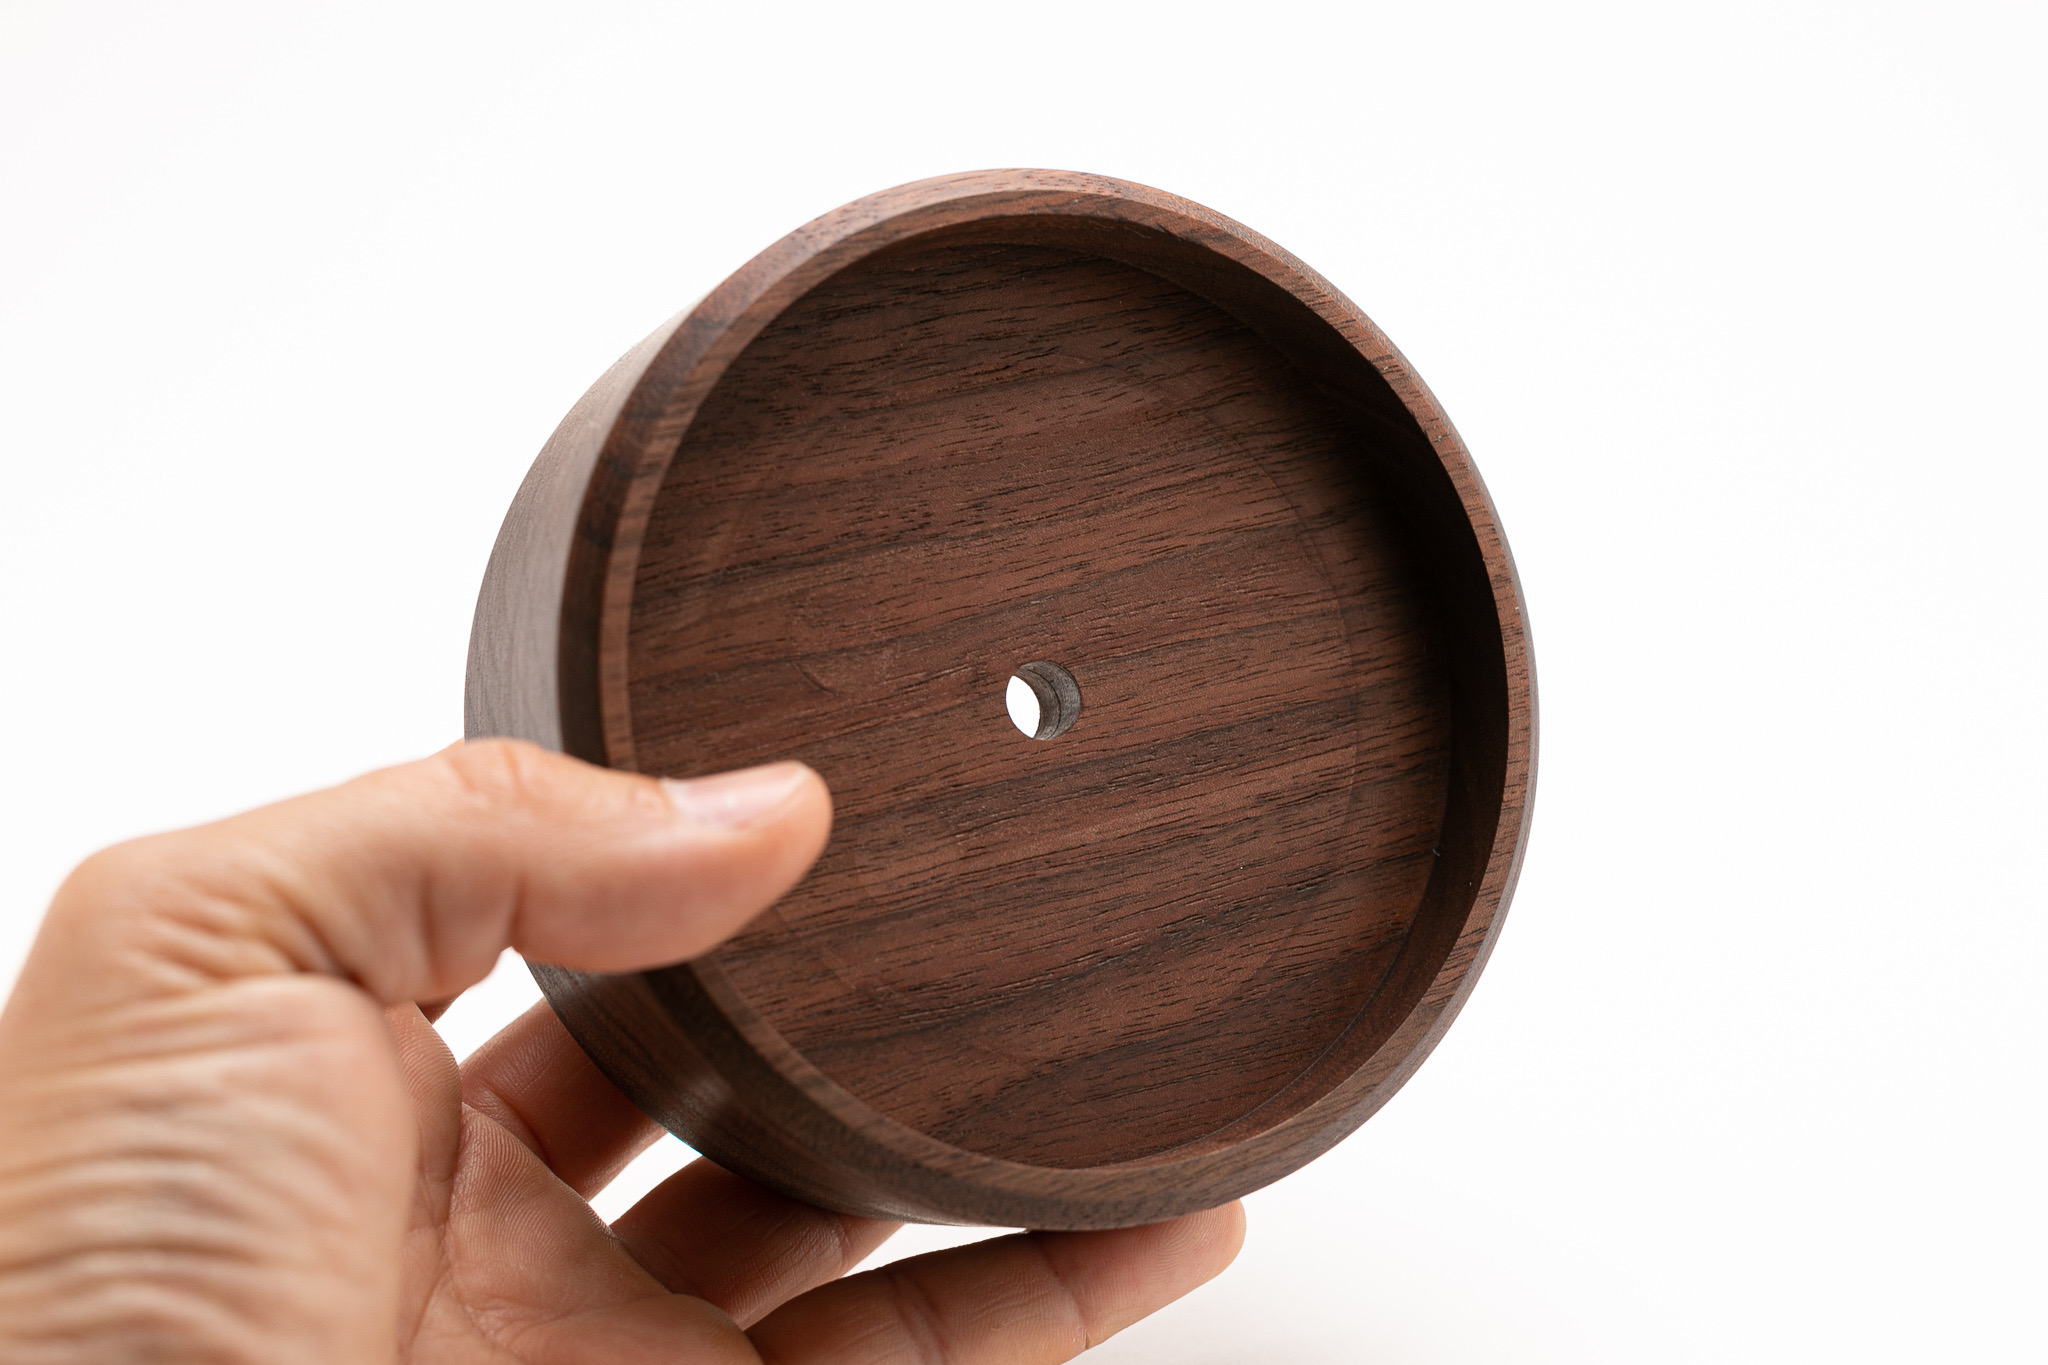 """THE BODY - –SOLID WALNUT–Hand crafted from solid hard walnut that's sustainably sourced in the USA. Just like in nature, the wood on each clock varies from piece to piece. A layer of mineral oil is applied by hand to each body, increasing the longevity of the wood's pristine condition. The body measures 4.5"""" in diameter and 1.5"""" thickness."""